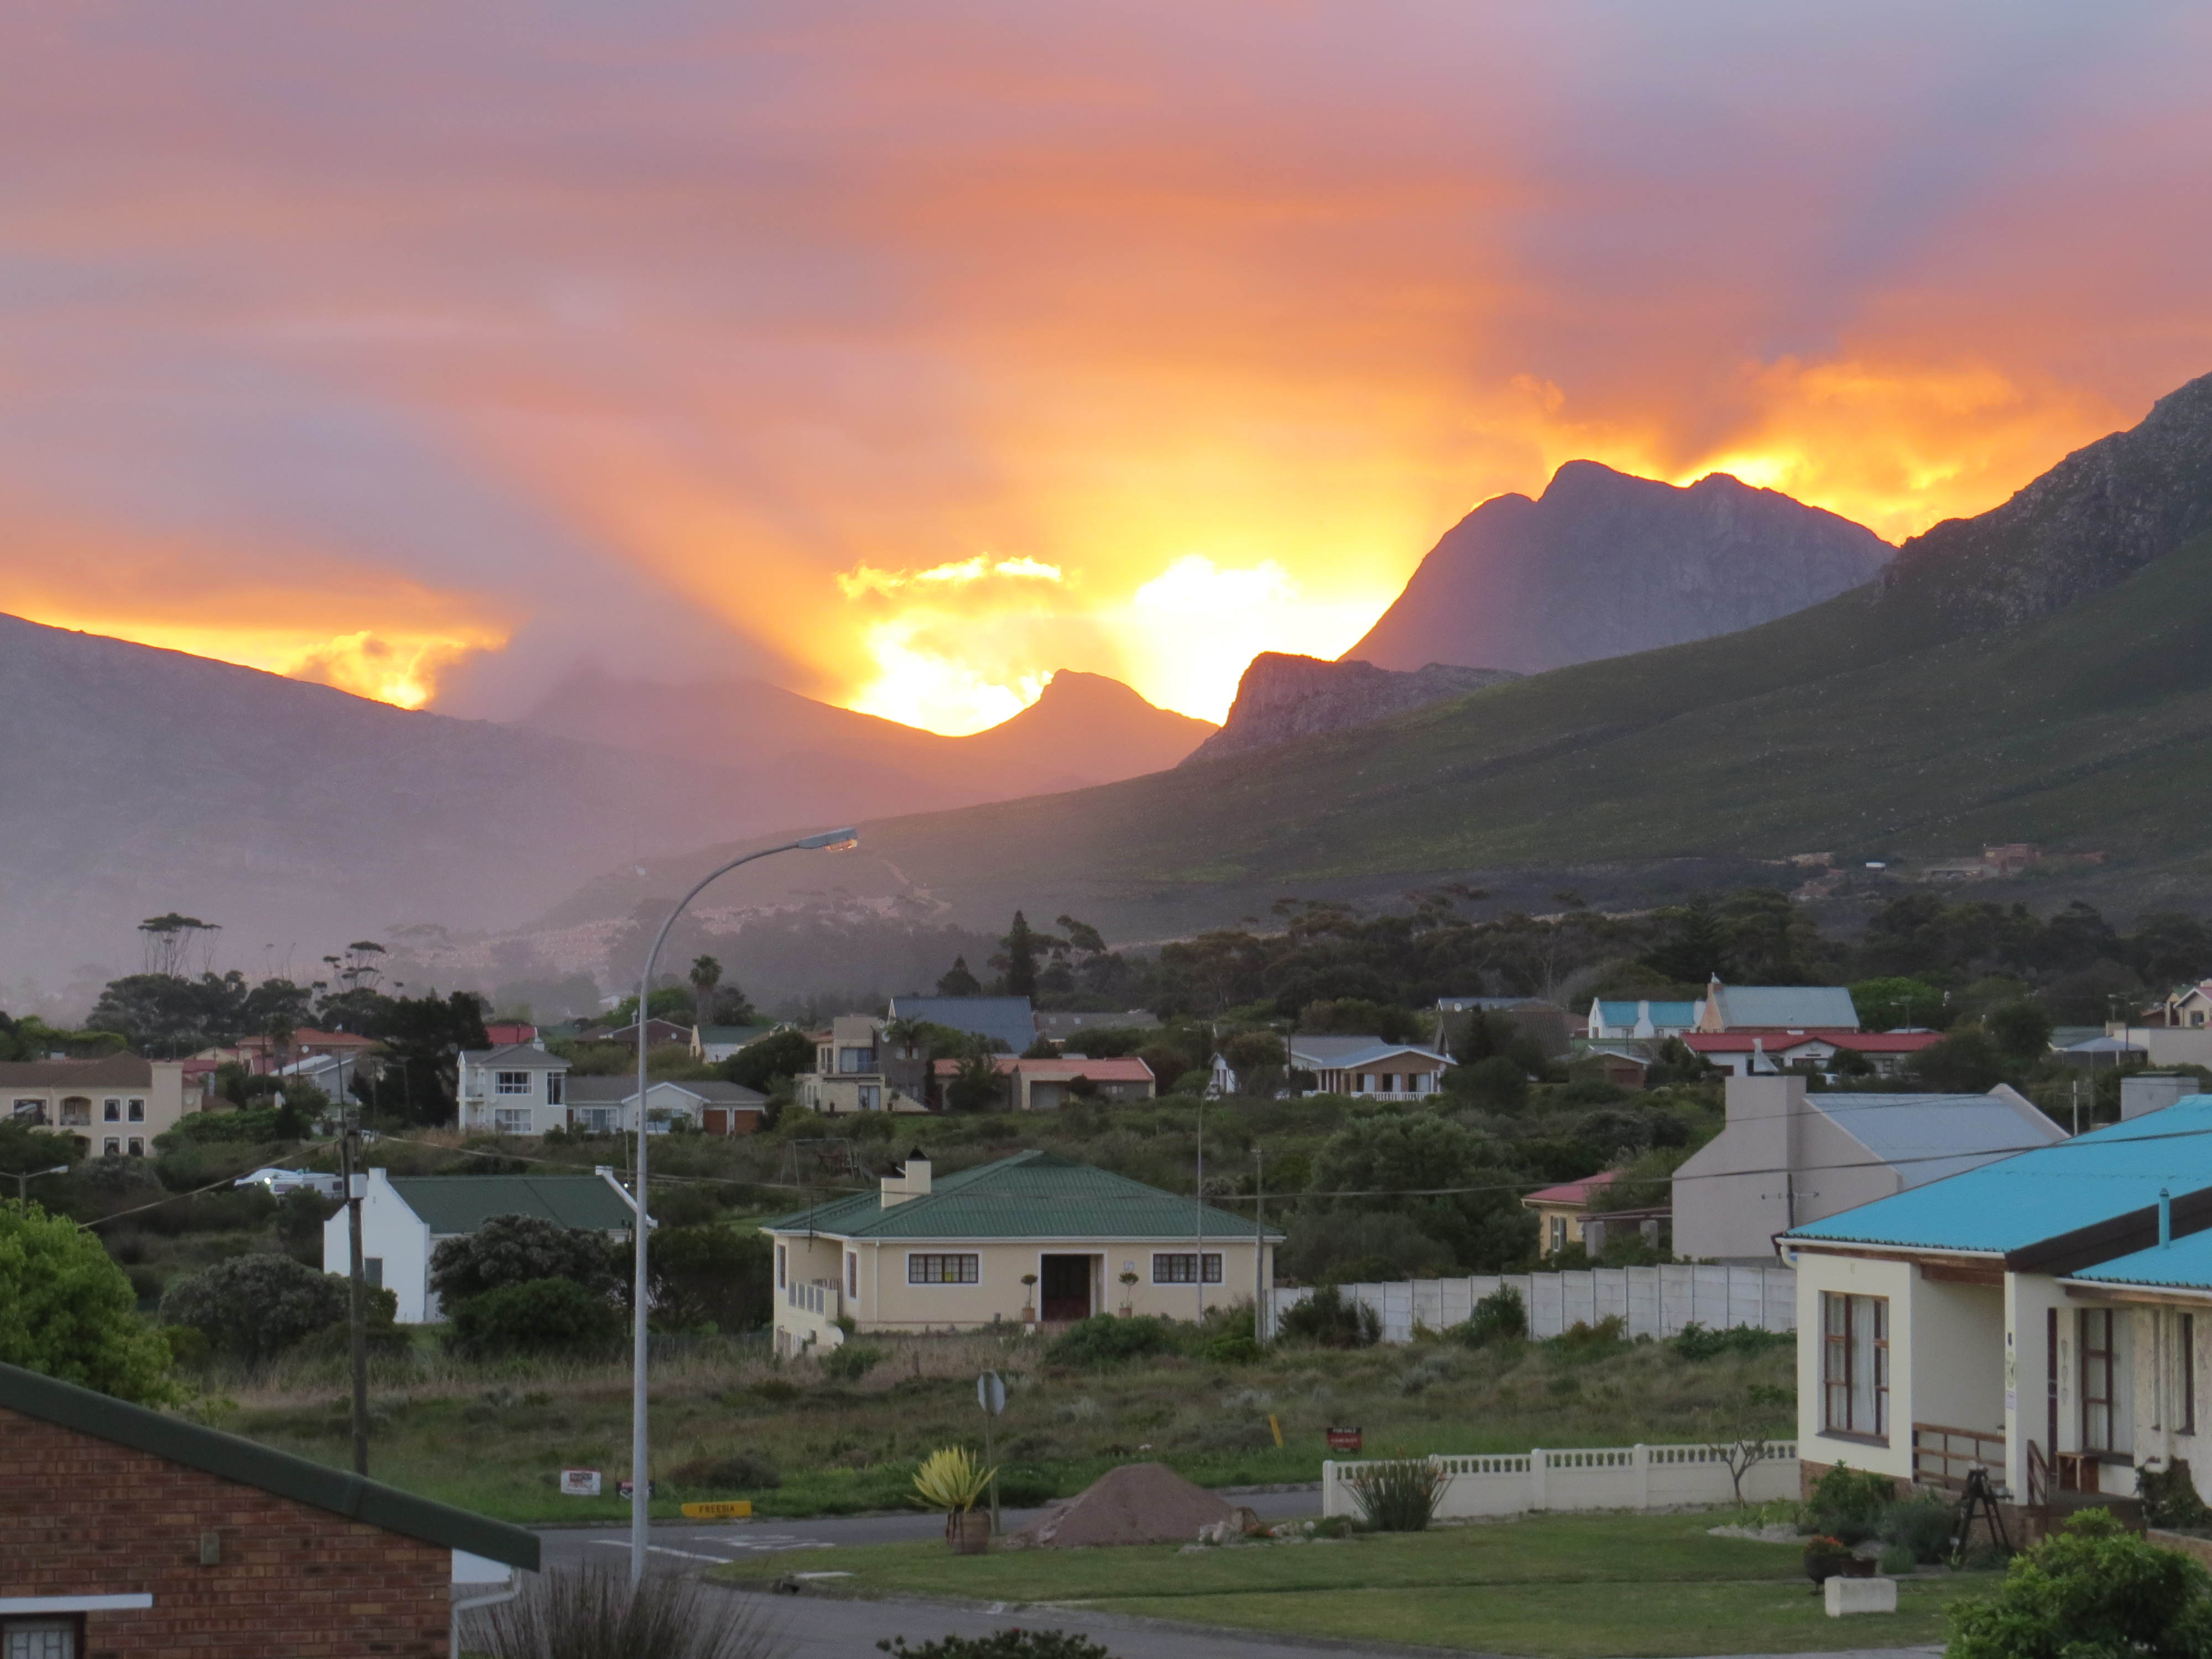 My hometown in South Africa.